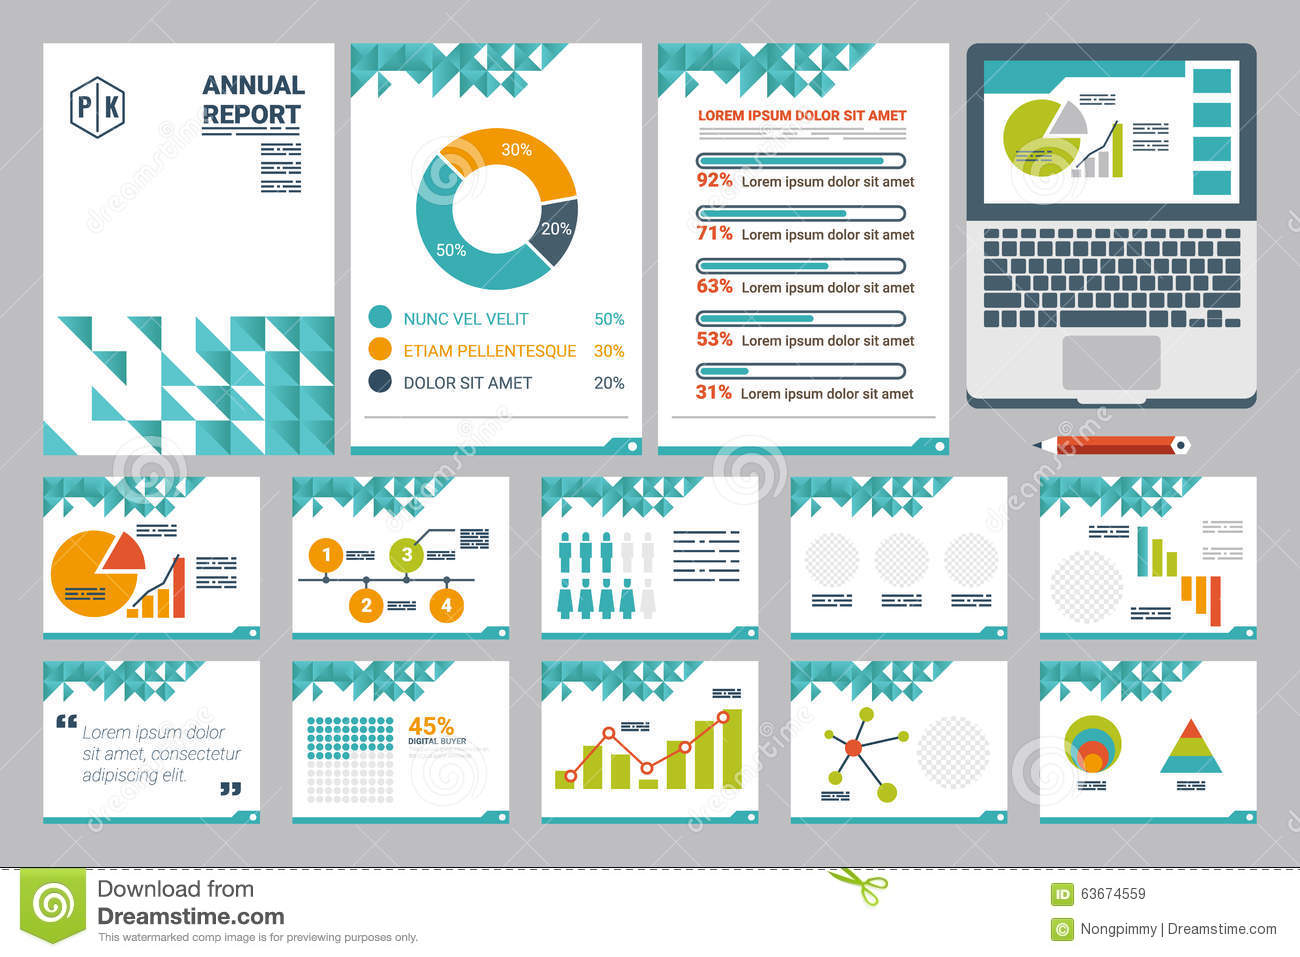 Annual Report Cover Page Templates Annual Report Cover Sheet Presentation  Template Illustration Flat Design Icons Elements  Annual Report Cover Page Template